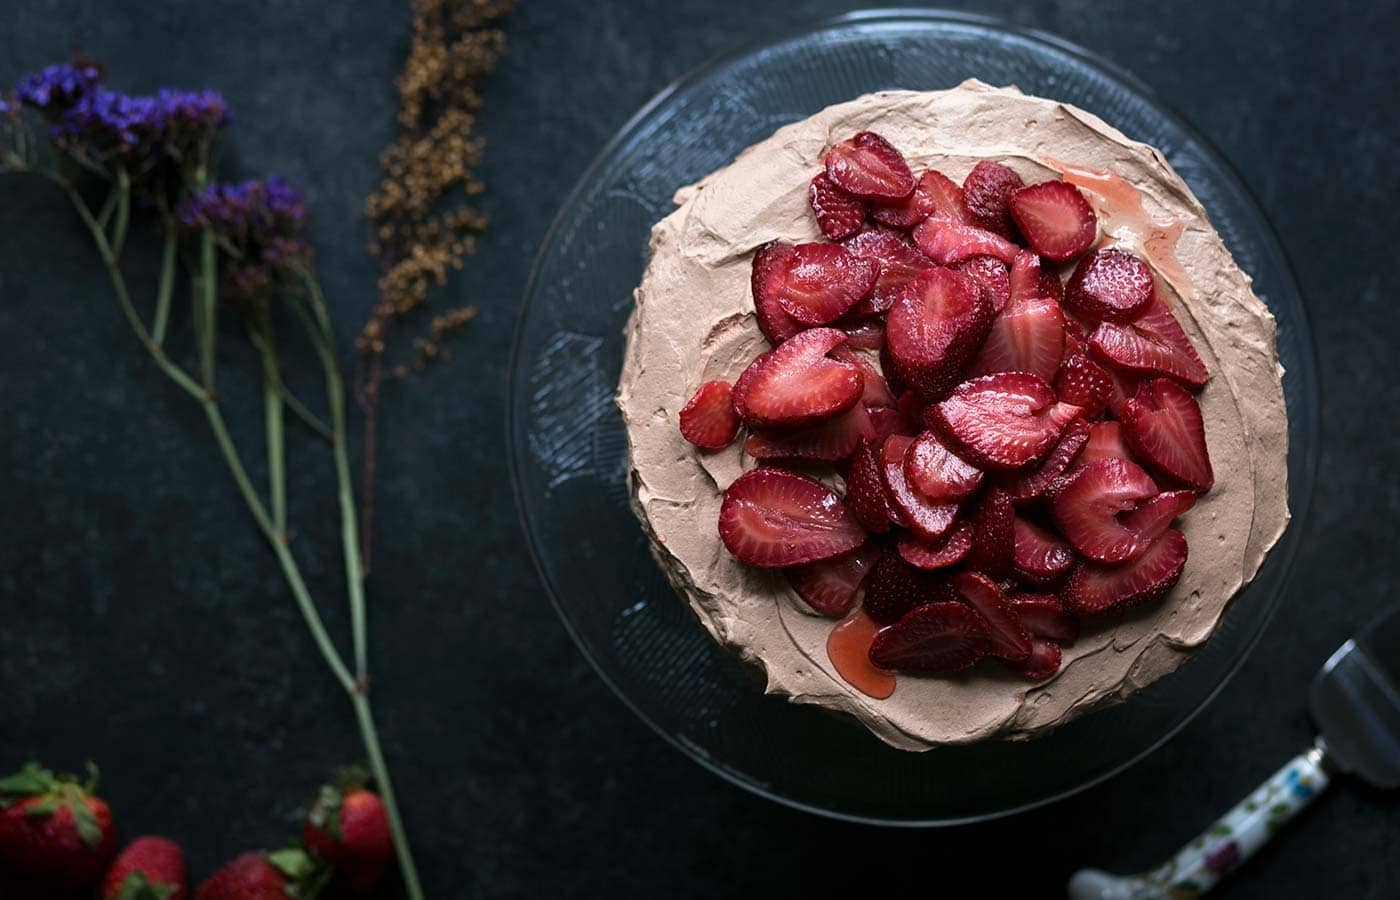 You're going to love this decadent chocolate cake with macerated strawberries! Get the recipe from Savory Simple.